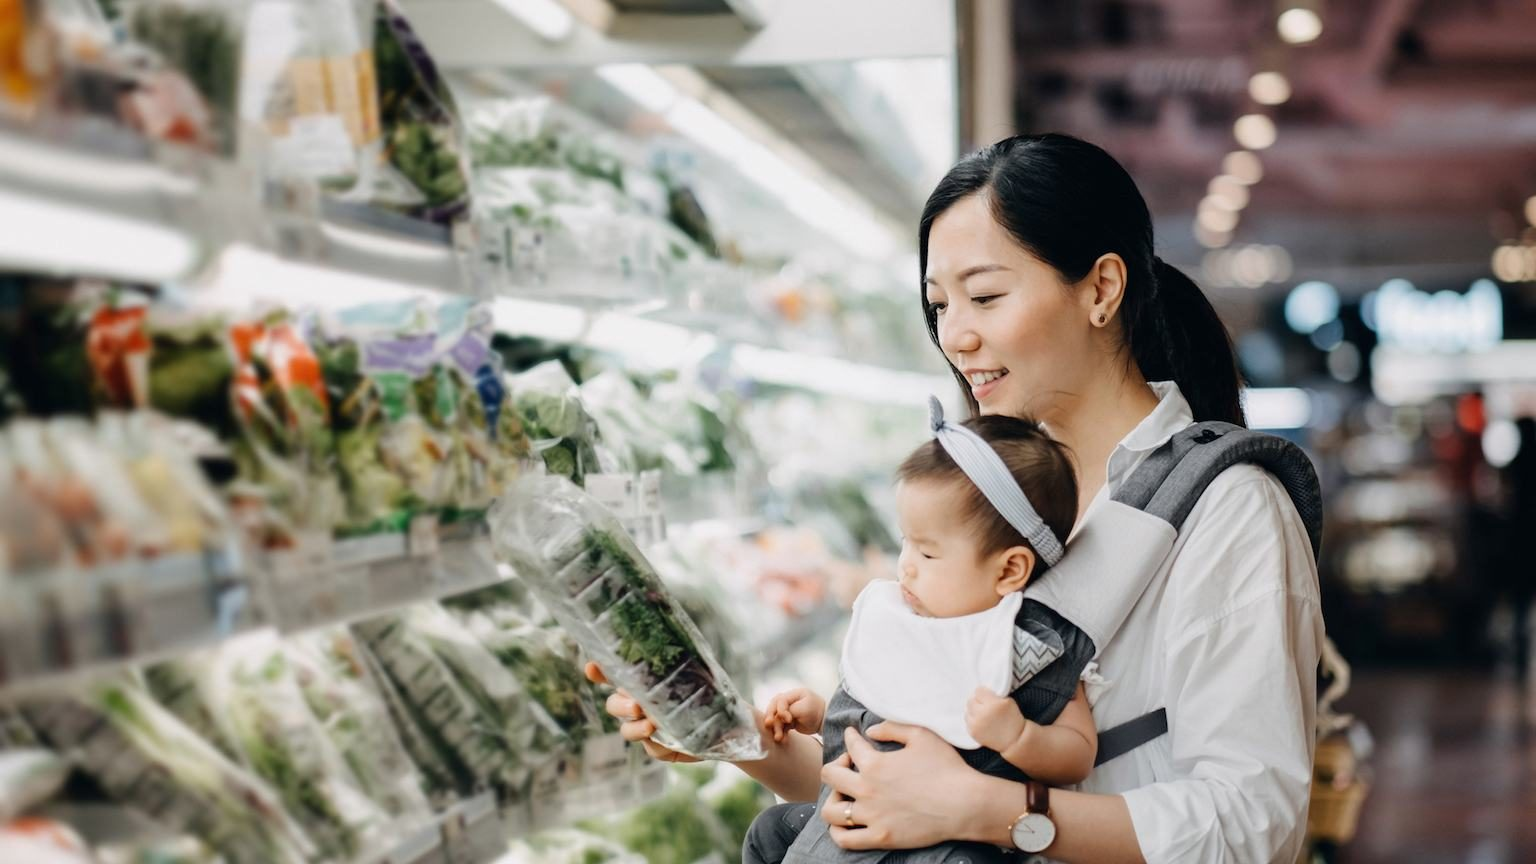 Mum holding baby while shopping for fresh produce in supermarket.